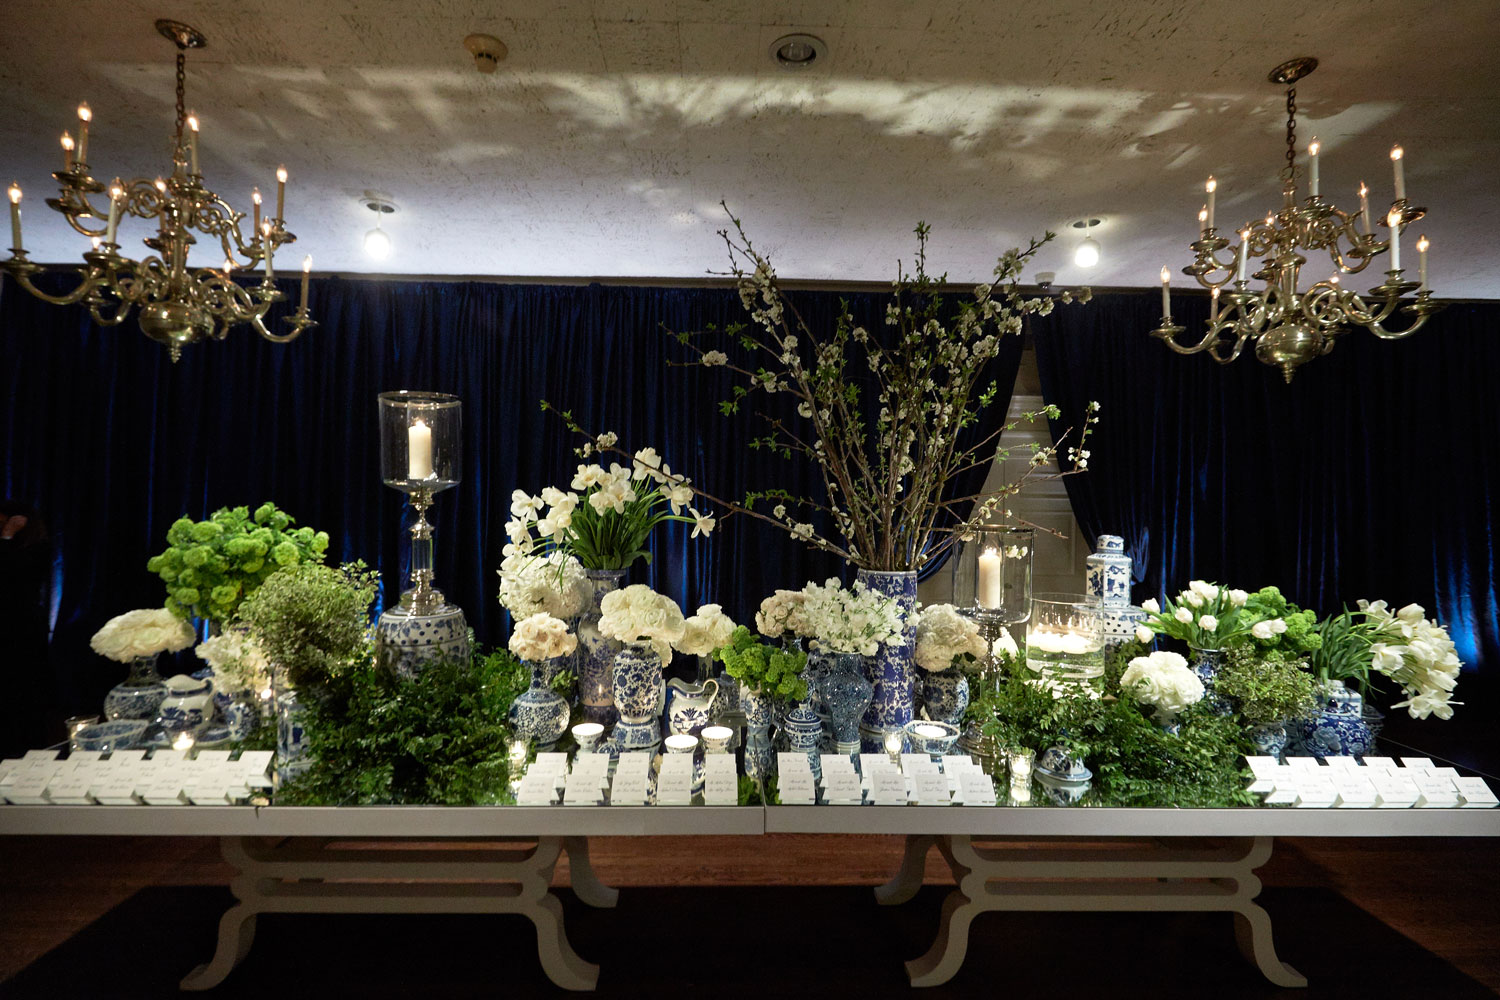 Escort card table at wedding reception entrance blue and white vase ginger jar chinoiserie decor